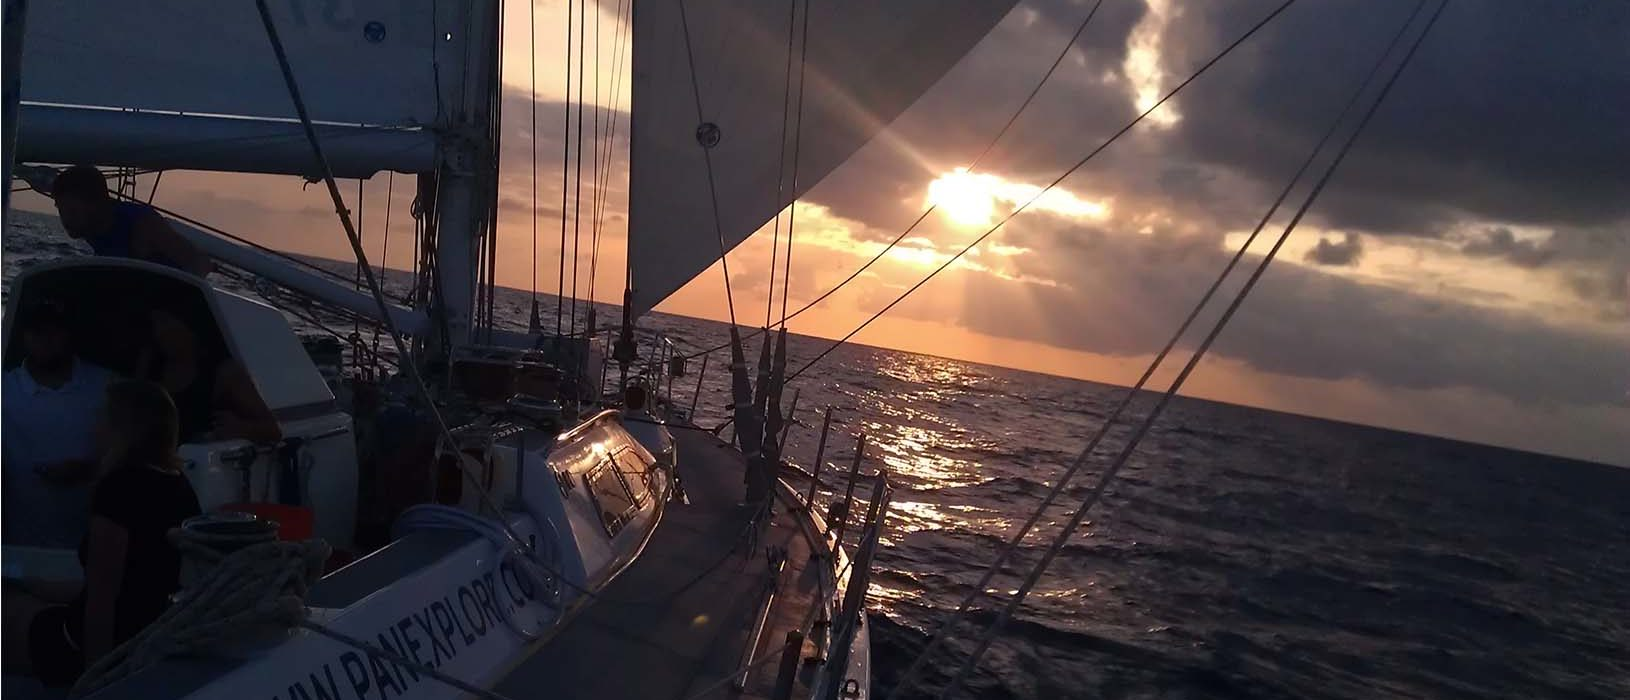 GONE WITH THE WINDS | GRENADA TO PANAMA